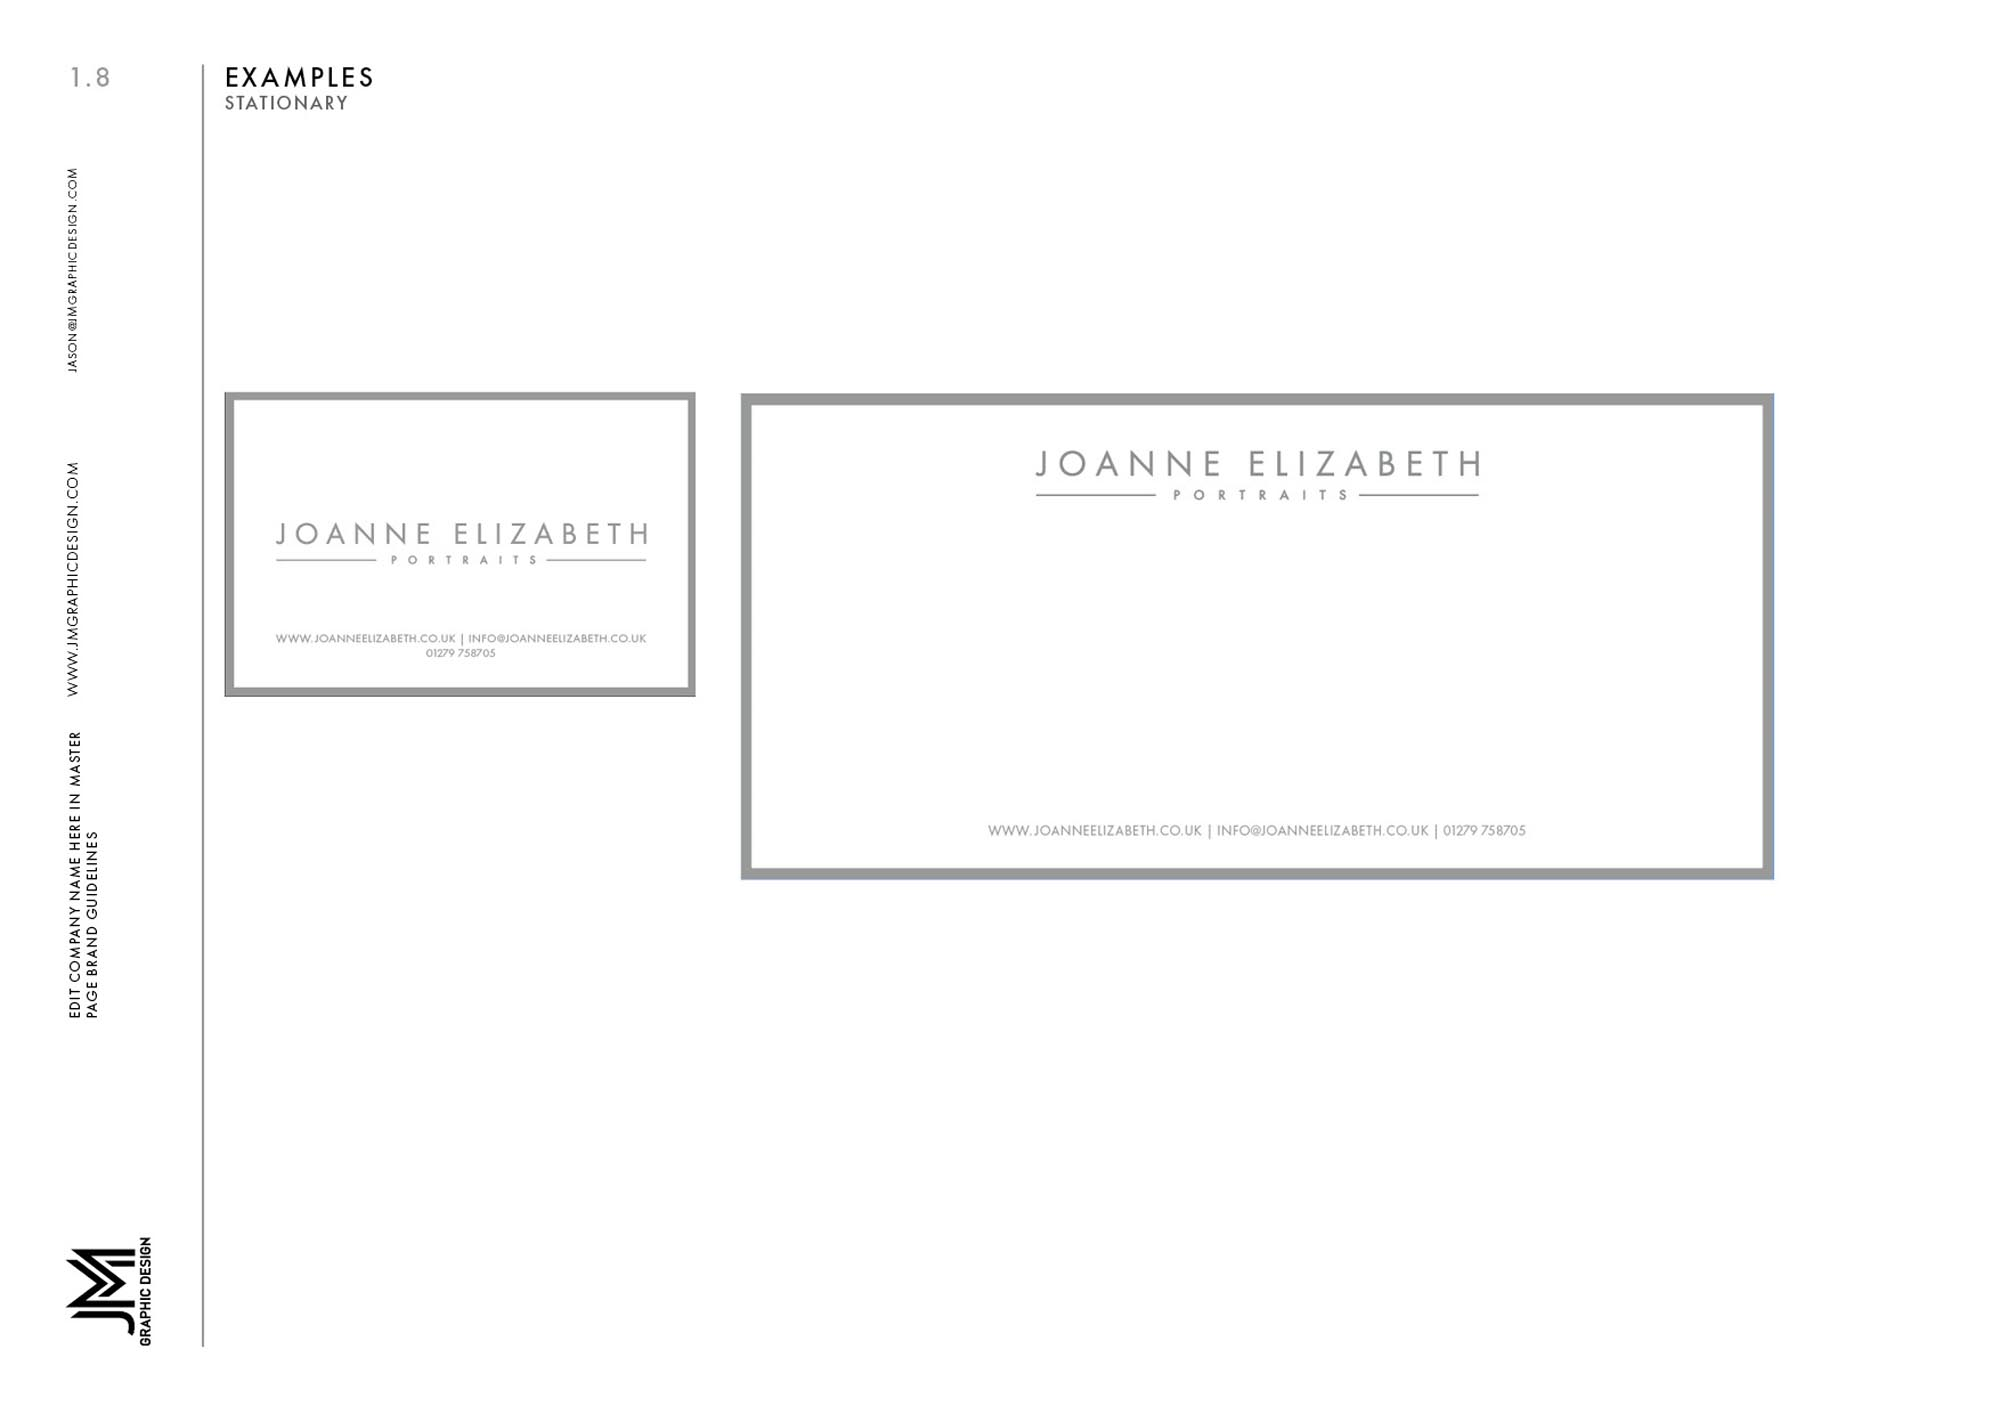 Joanne Elizabeth Photography - Brand Guidelines8